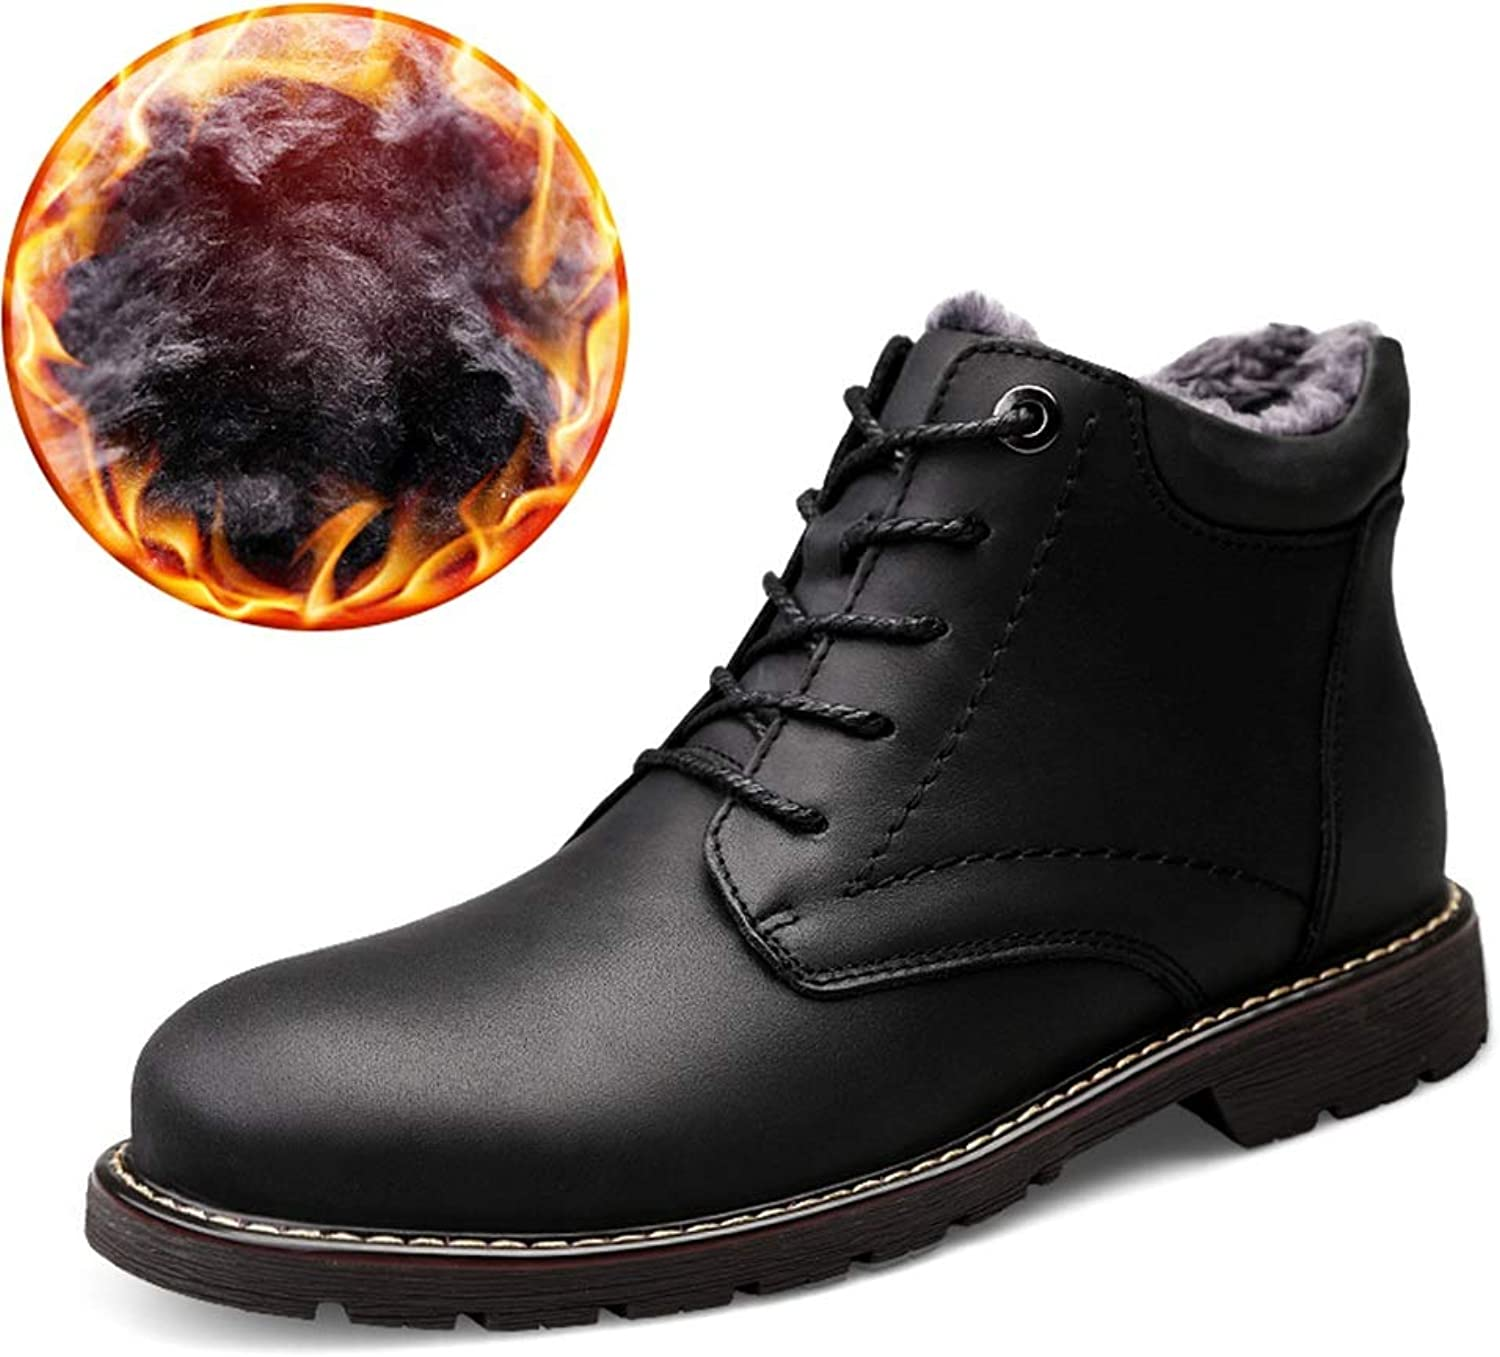 BND-SHOES,Men's Fashion Ankle Boots Casual Cowhide High-top Fleece Inside Outdoor Outsole shoes(Conventional Optional) Durable,Stand Wear and Tear (color   Warm Black, Size   7 D(M) US)